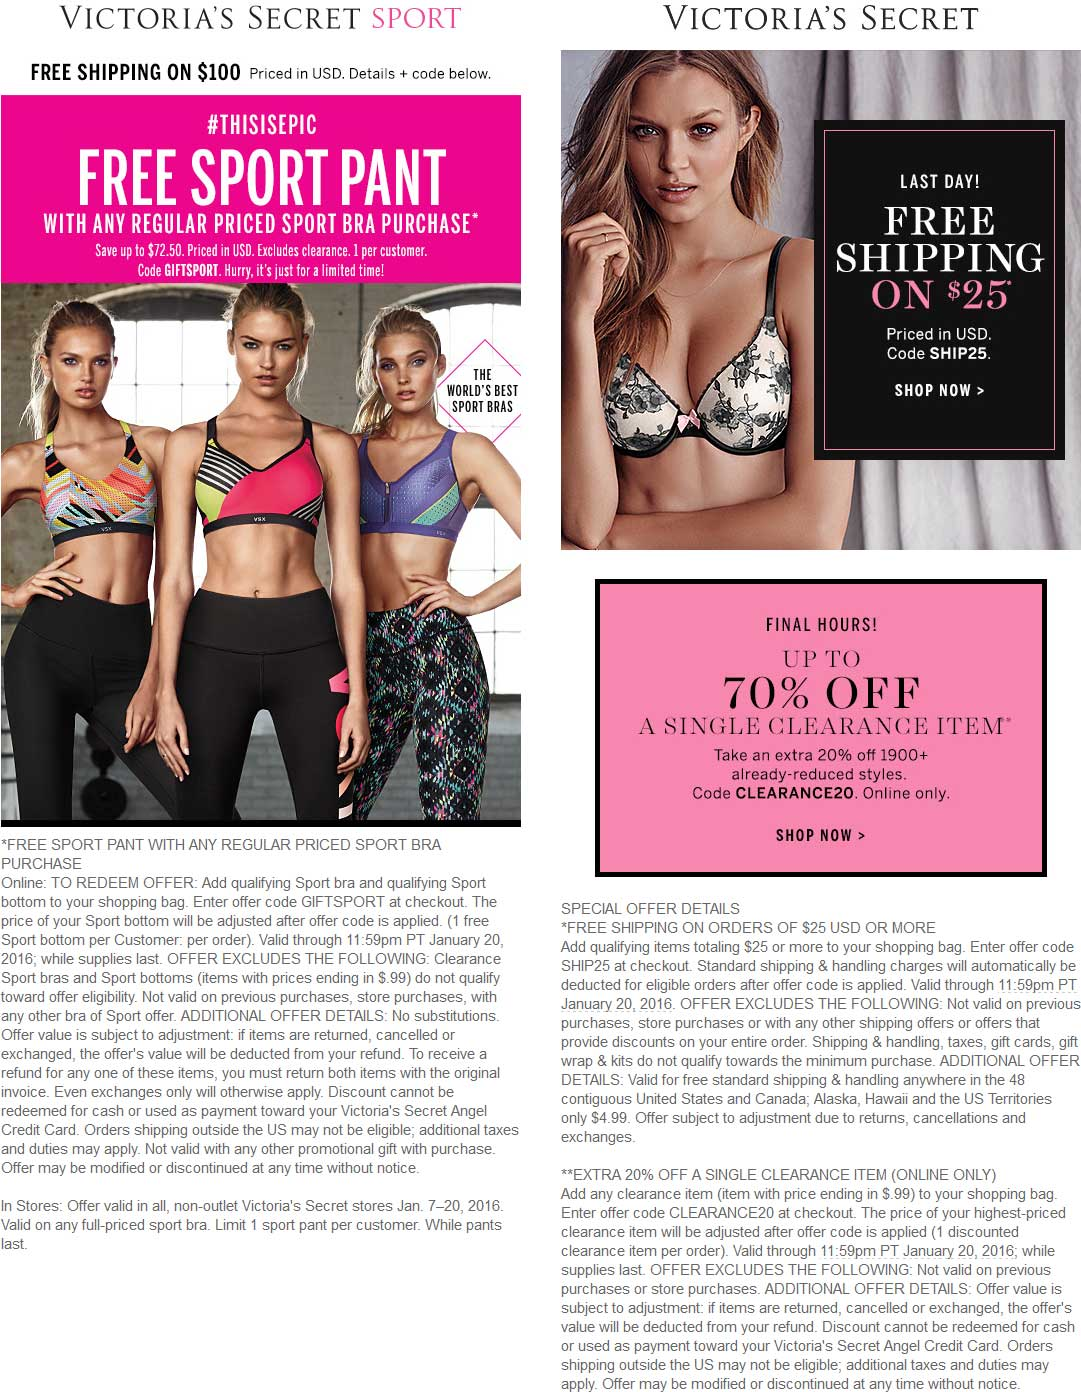 Victorias Secret Coupon September 2017 Free sport pant with your sport bra today at Victorias Secret, or online via promo code GIFTSPORT